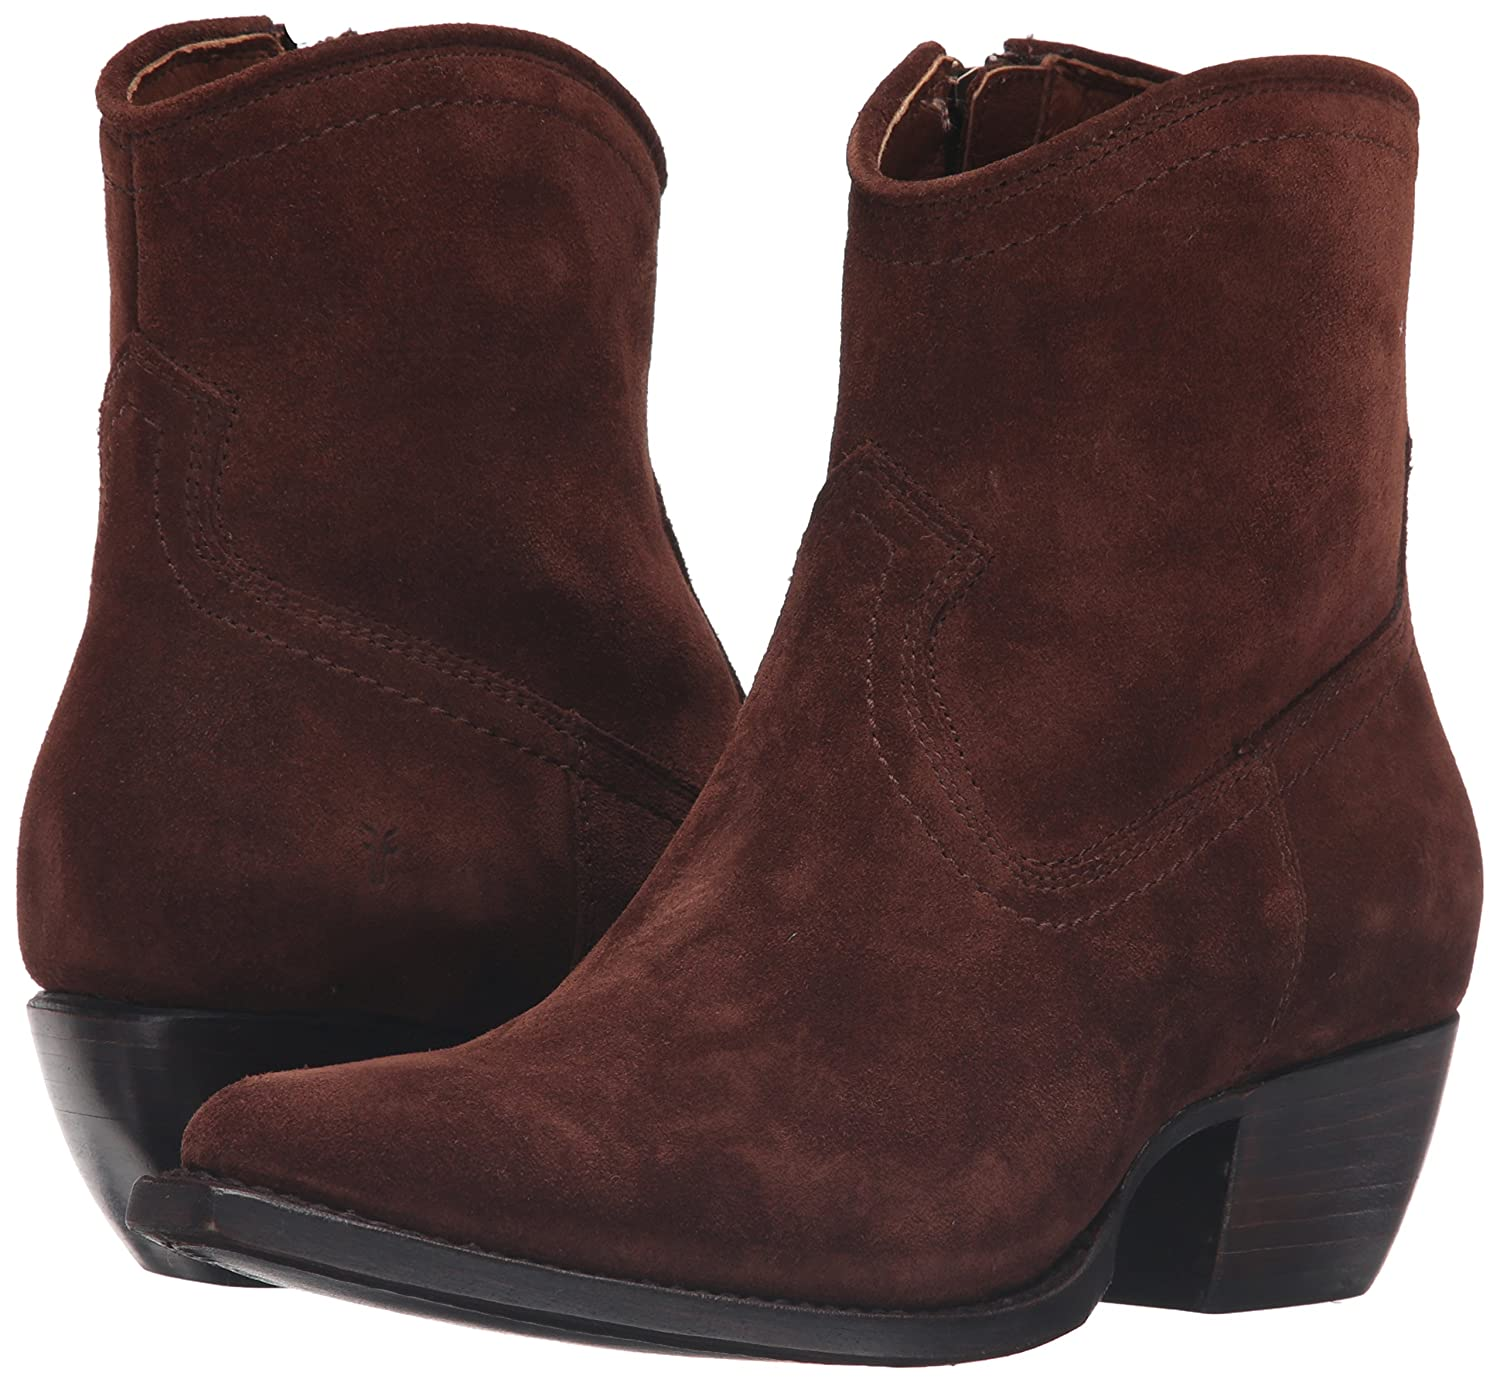 FRYE Women's Sacha Short B(M) Suede Boot B01944DJV4 6 B(M) Short US|Brown 182ab4